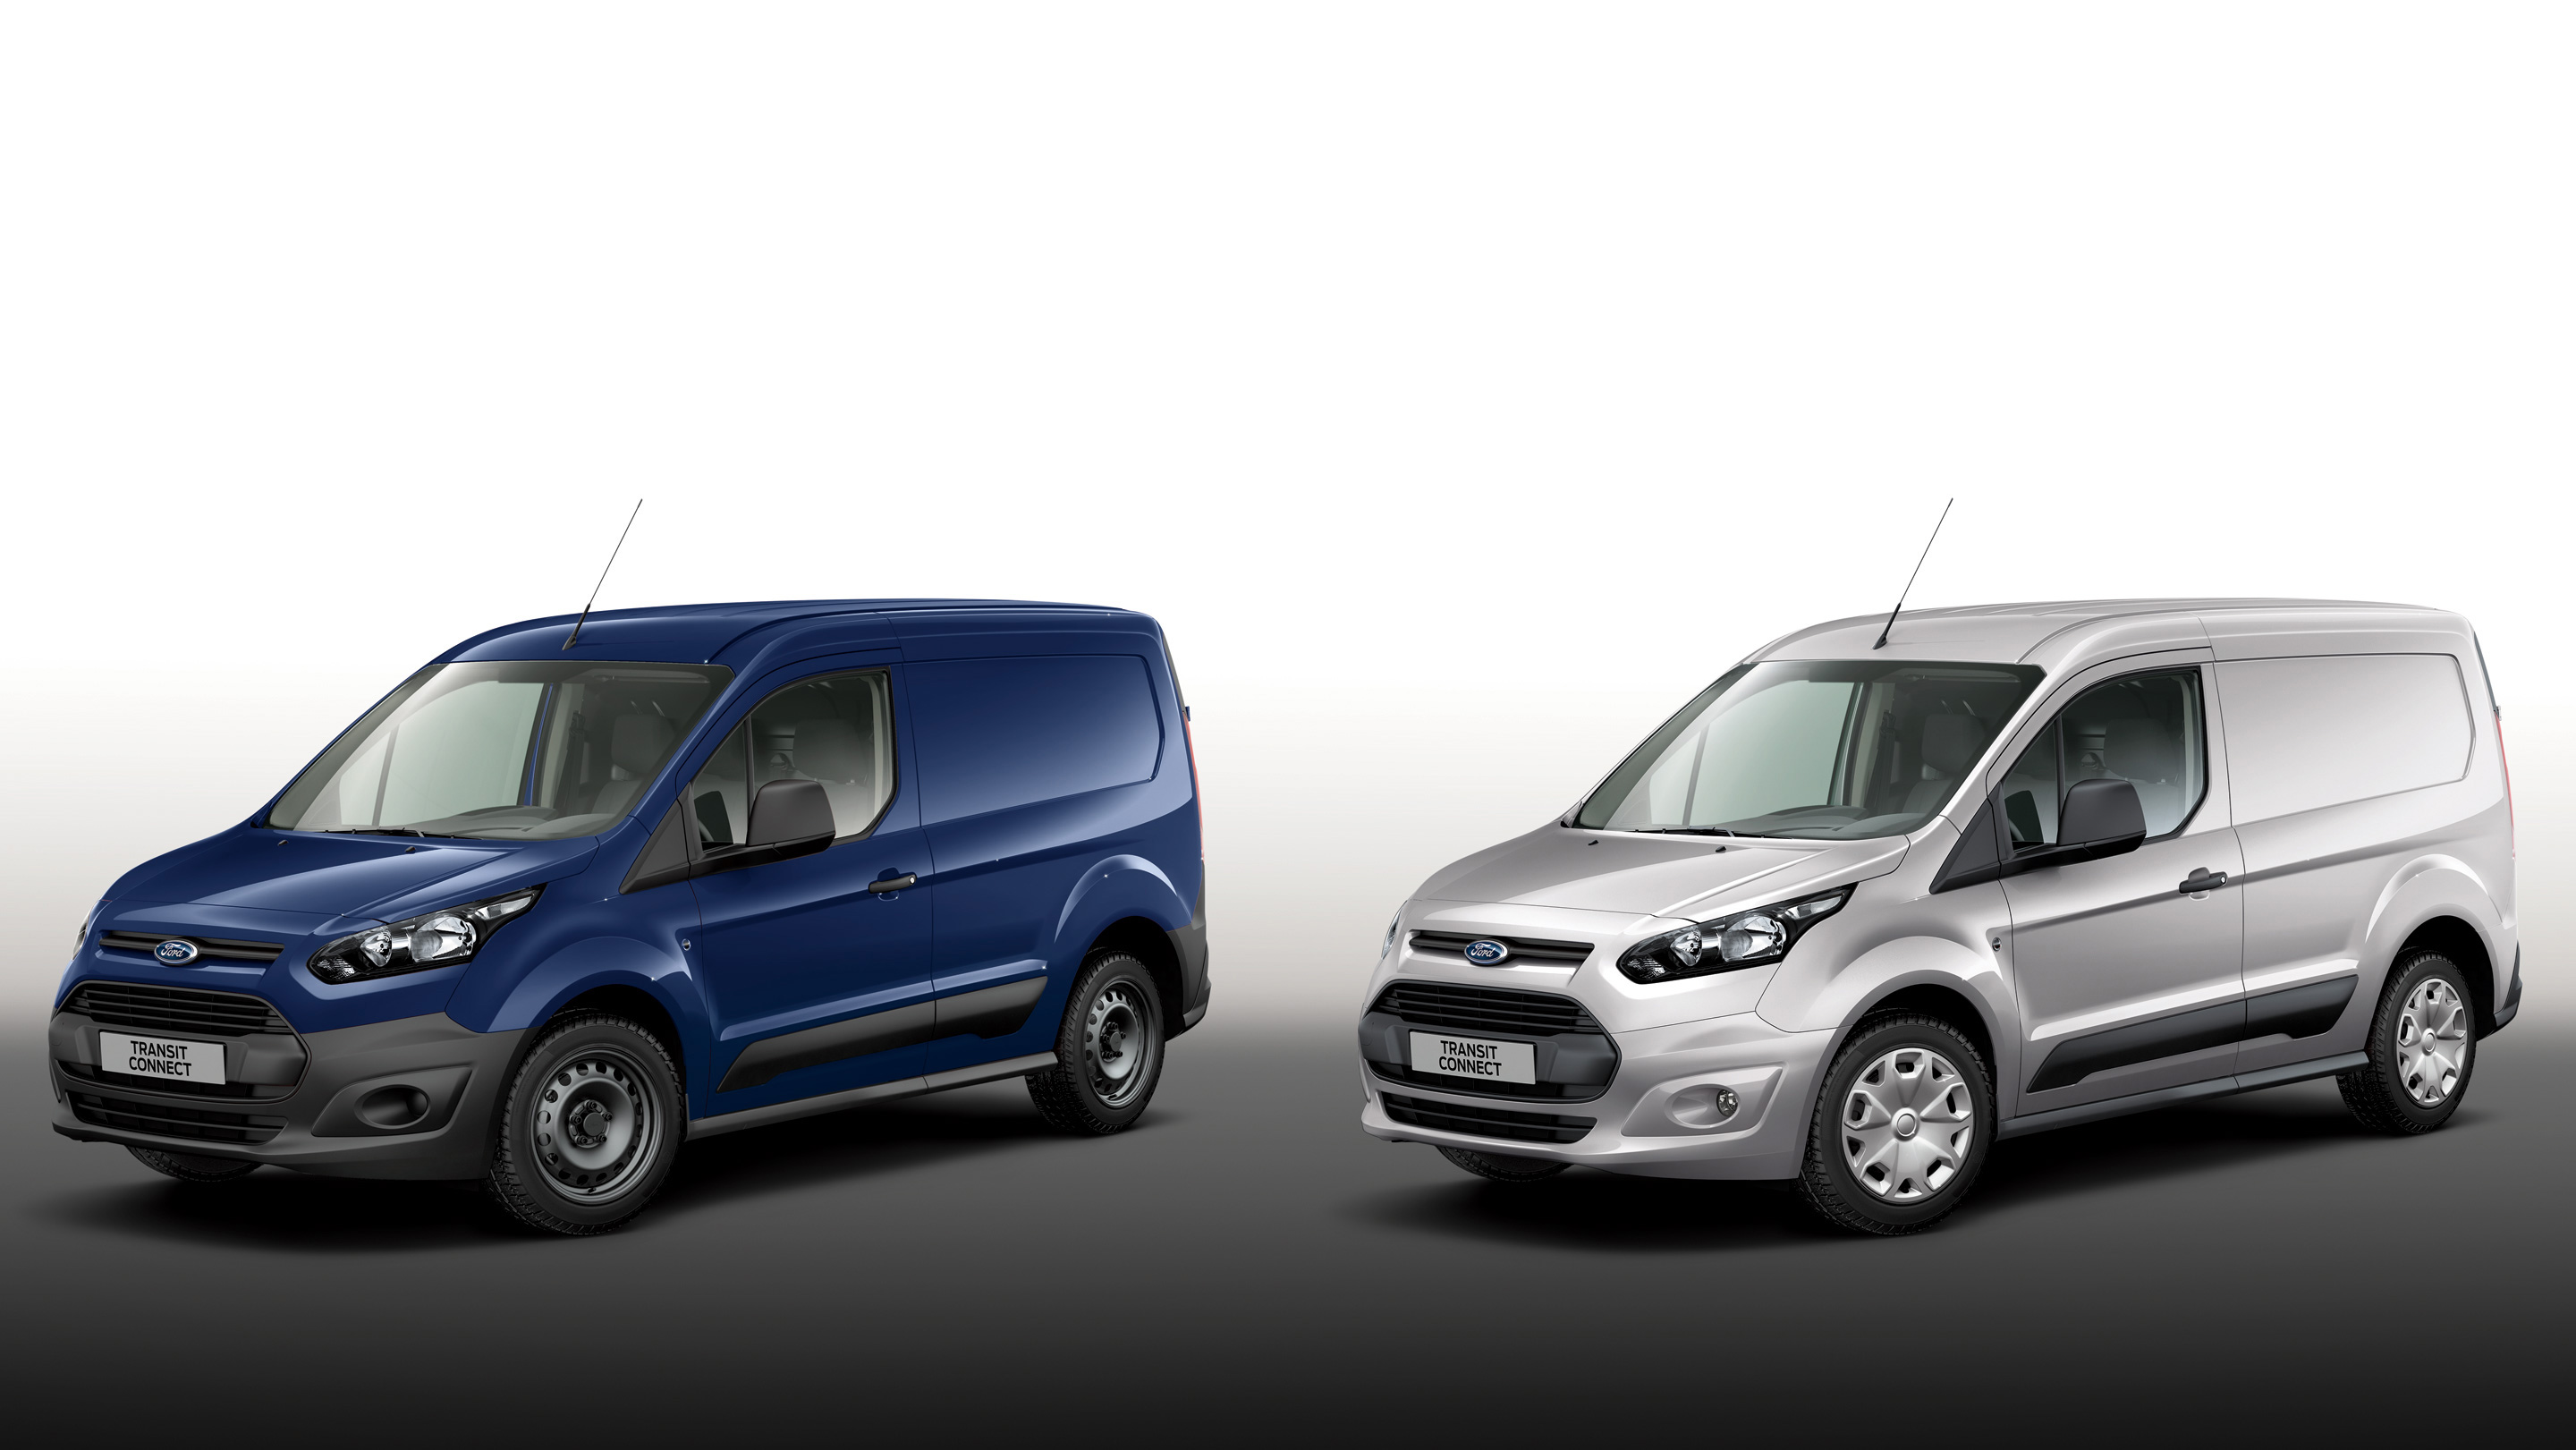 2013 - [Ford] Transit (Connect & MaxiVan) - Page 3 Findtherightmodelforyourbusiness